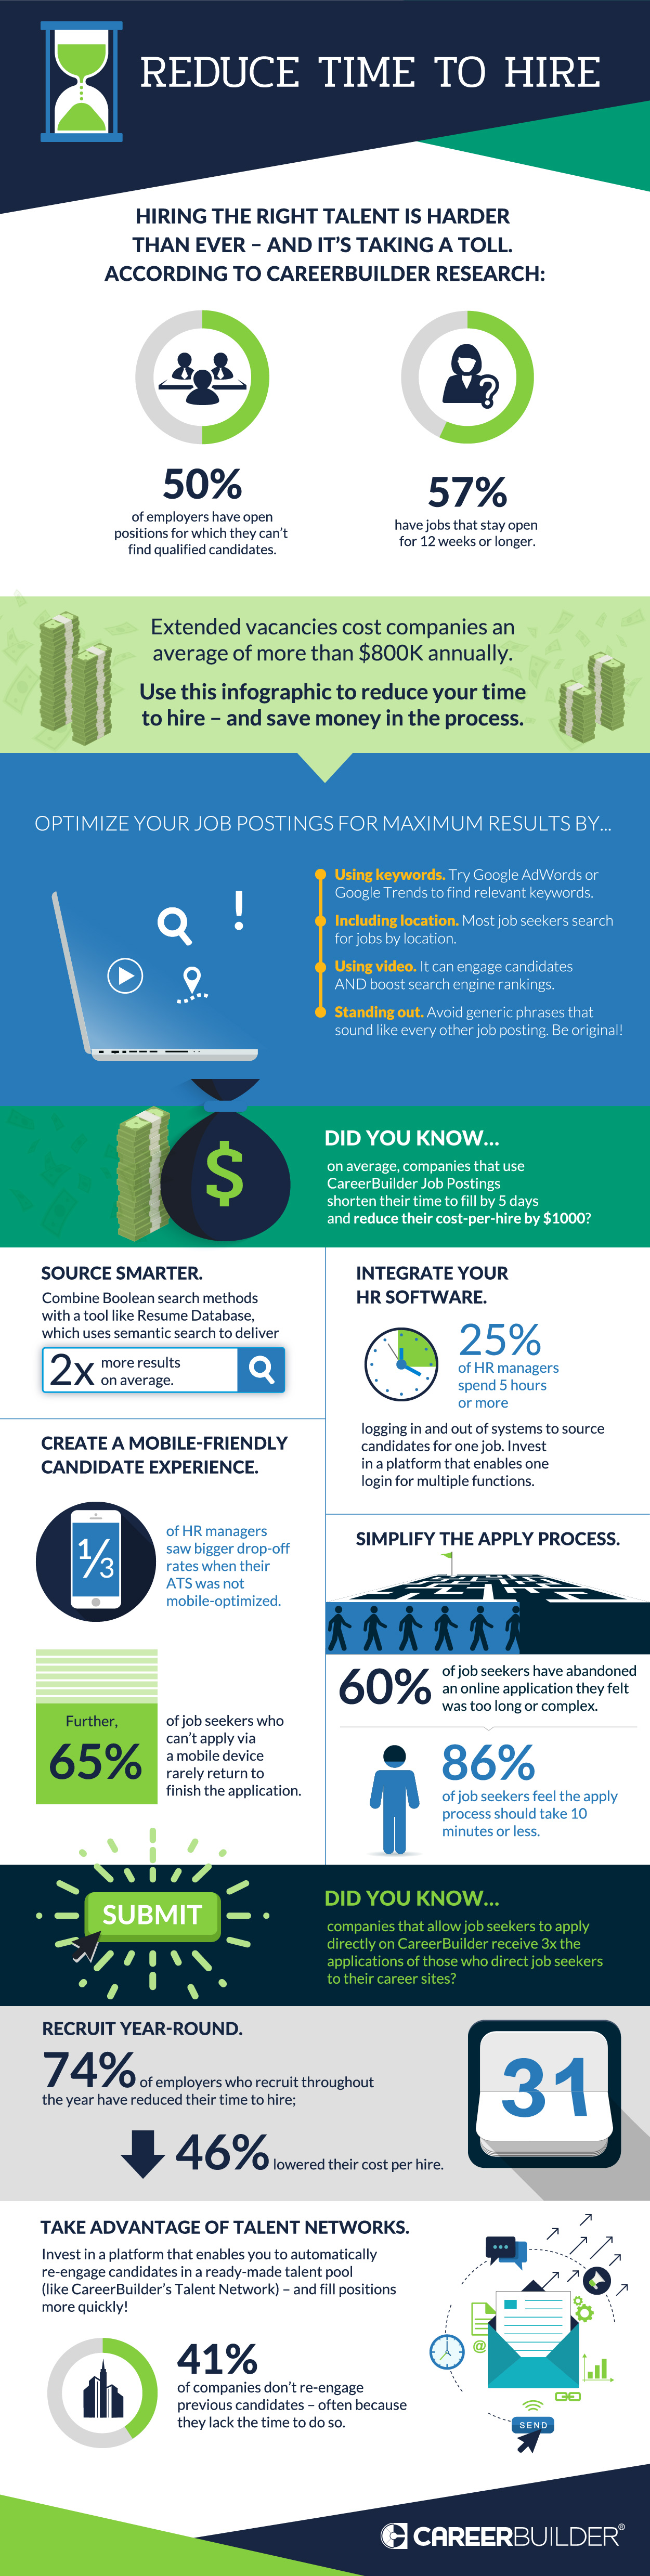 Reduce Time To Hire Infographic